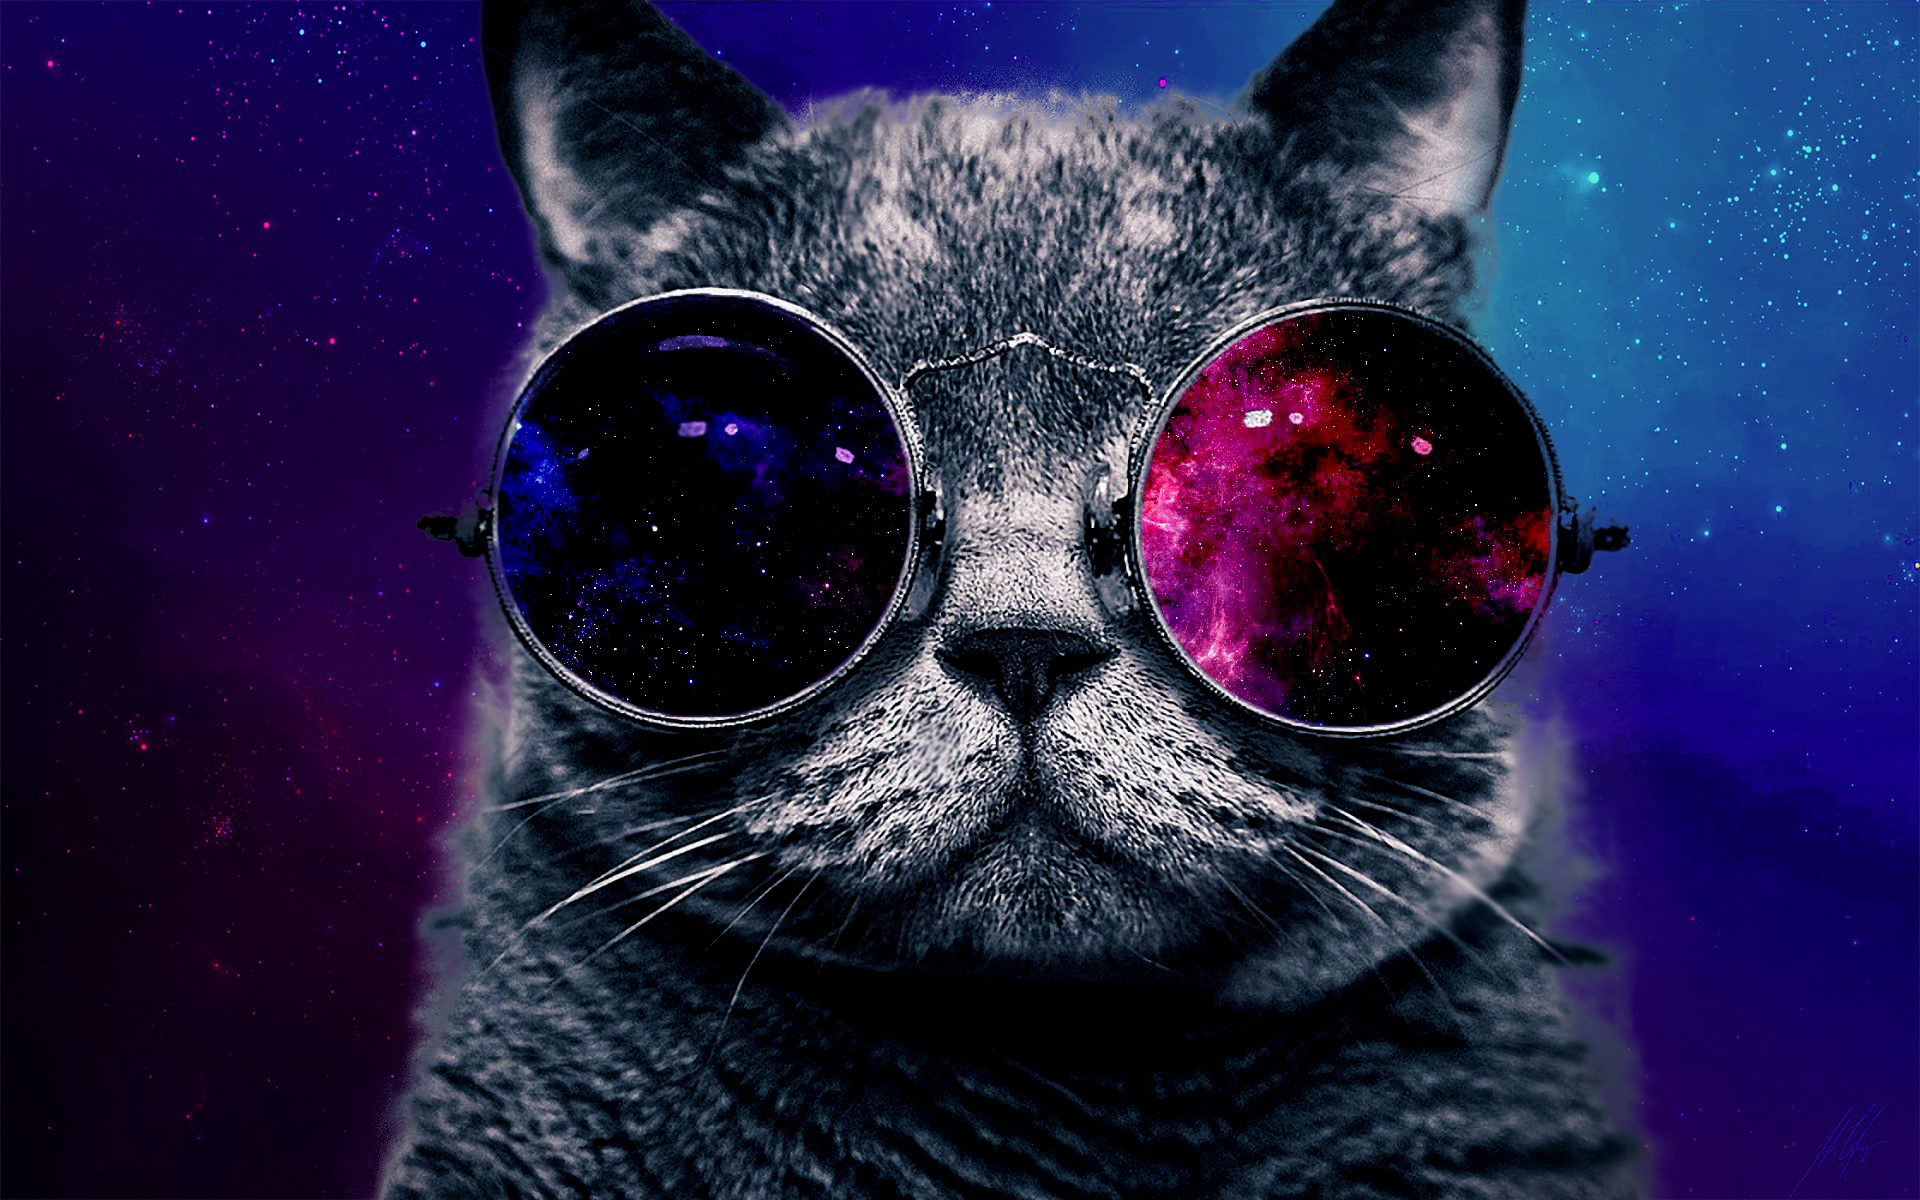 Tumblr Cat With Galaxy Glasses High cat with sunglasses 1920x1200